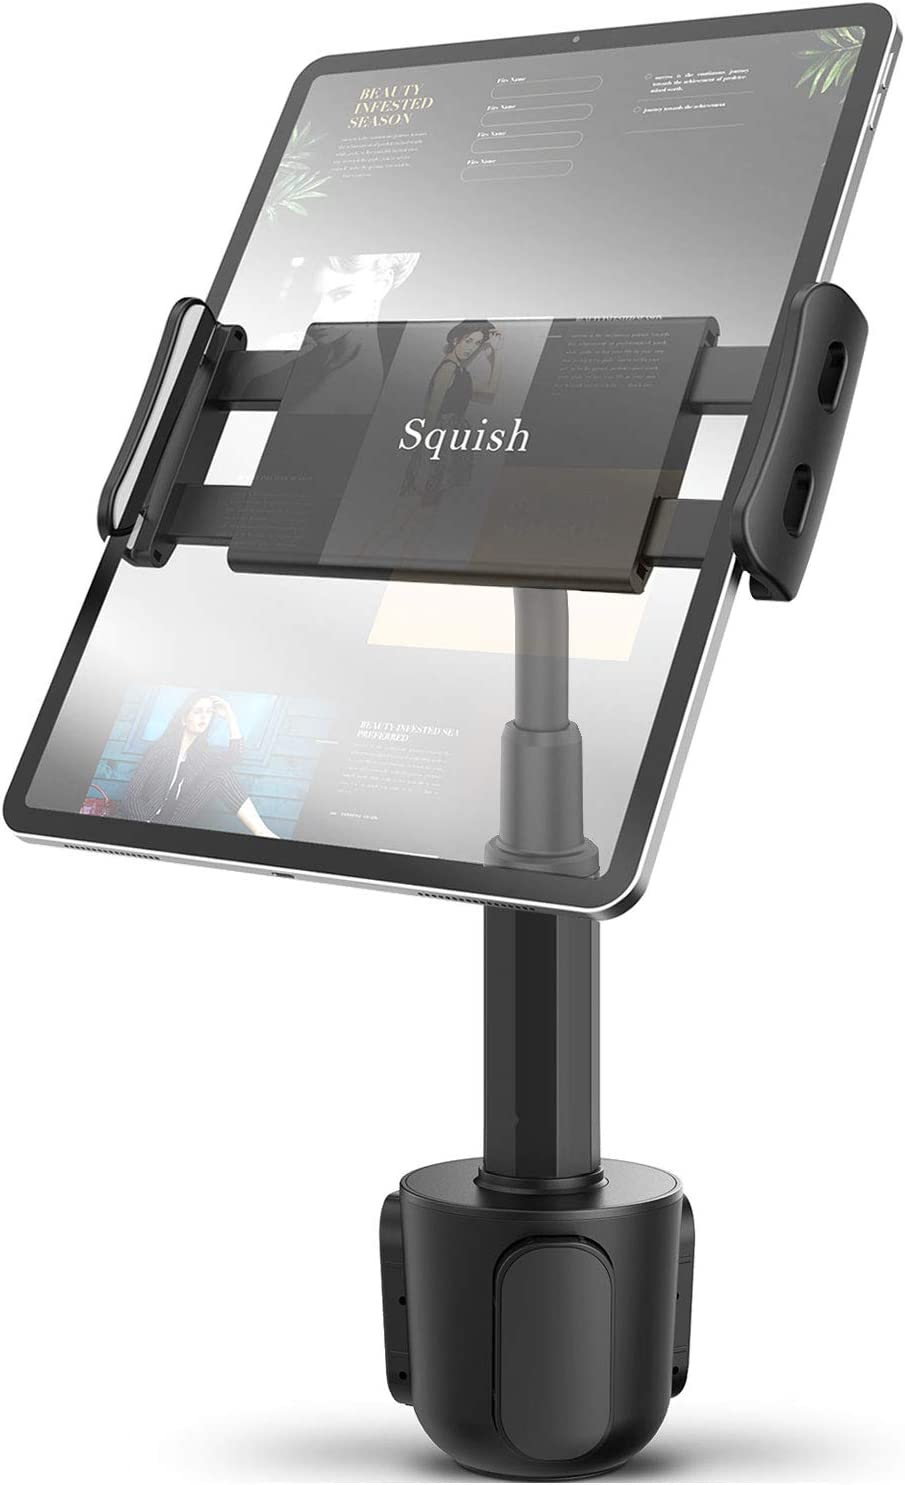 """Squish Car Cup Holder Tablet Mount, Universal Tablet Holder for iPad Pro/Air/Mini, Kindle,Tablets Nintendo Switch Smartphones, Compatible with 4.4"""" to 11"""" Devices"""